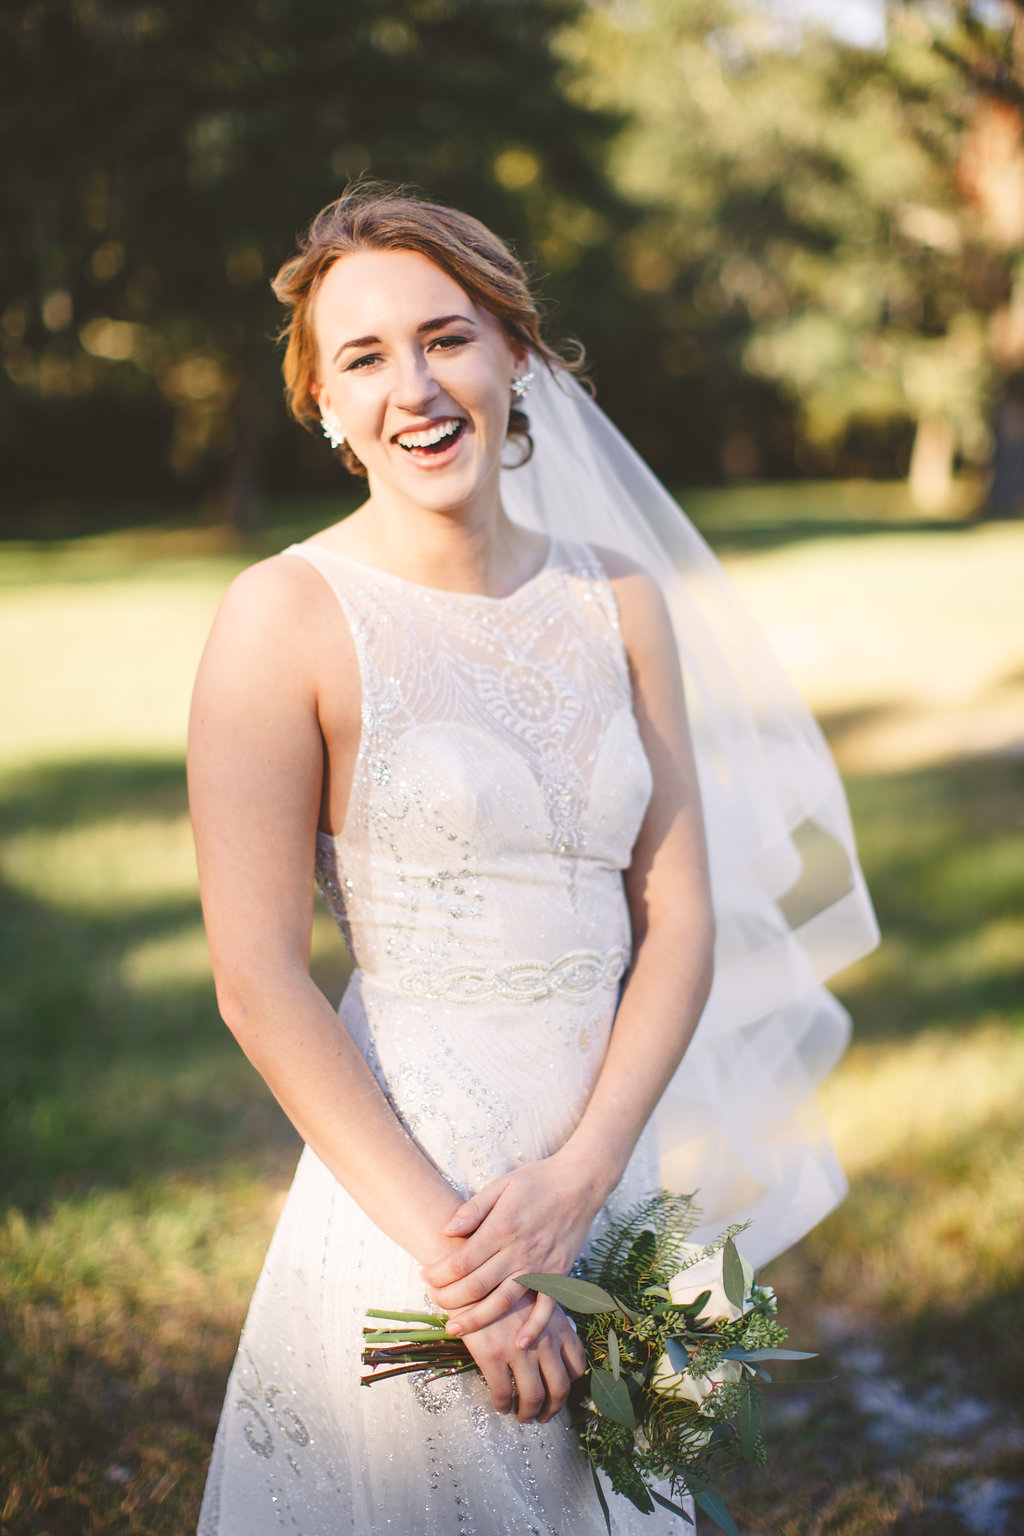 Bride with hair and makeup from Canary Rock Salon at Sugah Cain Plantation  //  Charleston, SC Wedding Photography by Carolina Photosmith  Bride and her maids at Sugah Cain Plantation in front of white horse and Carriage  //  on A Lowocountry Wedding Magazine & Blog